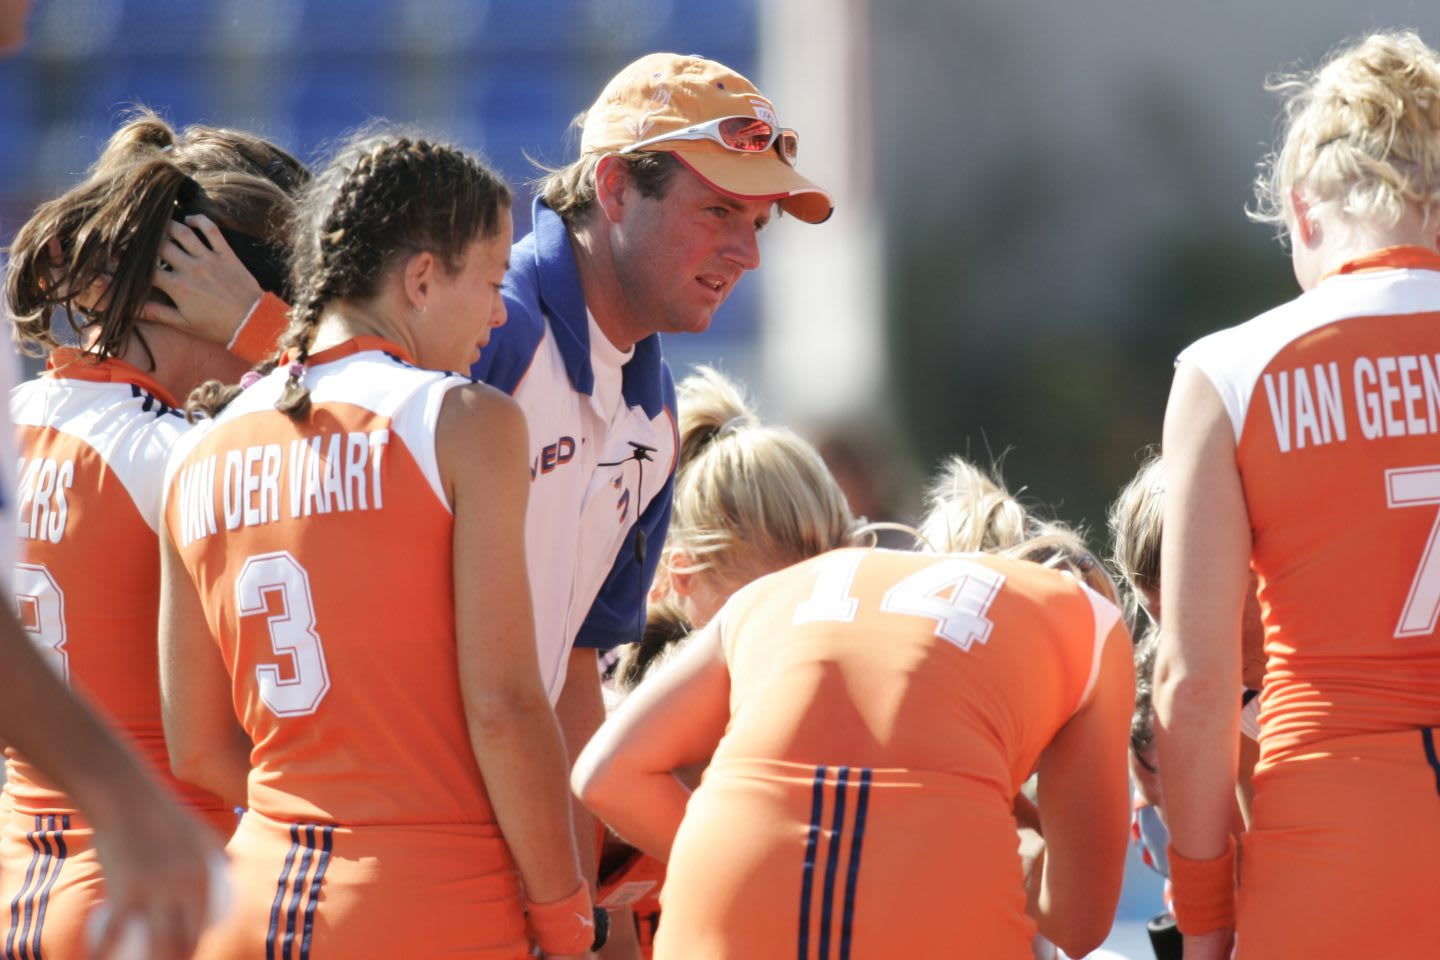 Hockey coach Marc Lammers is coaching the Dutch women's team. Marc and his players are gathered in a circle.